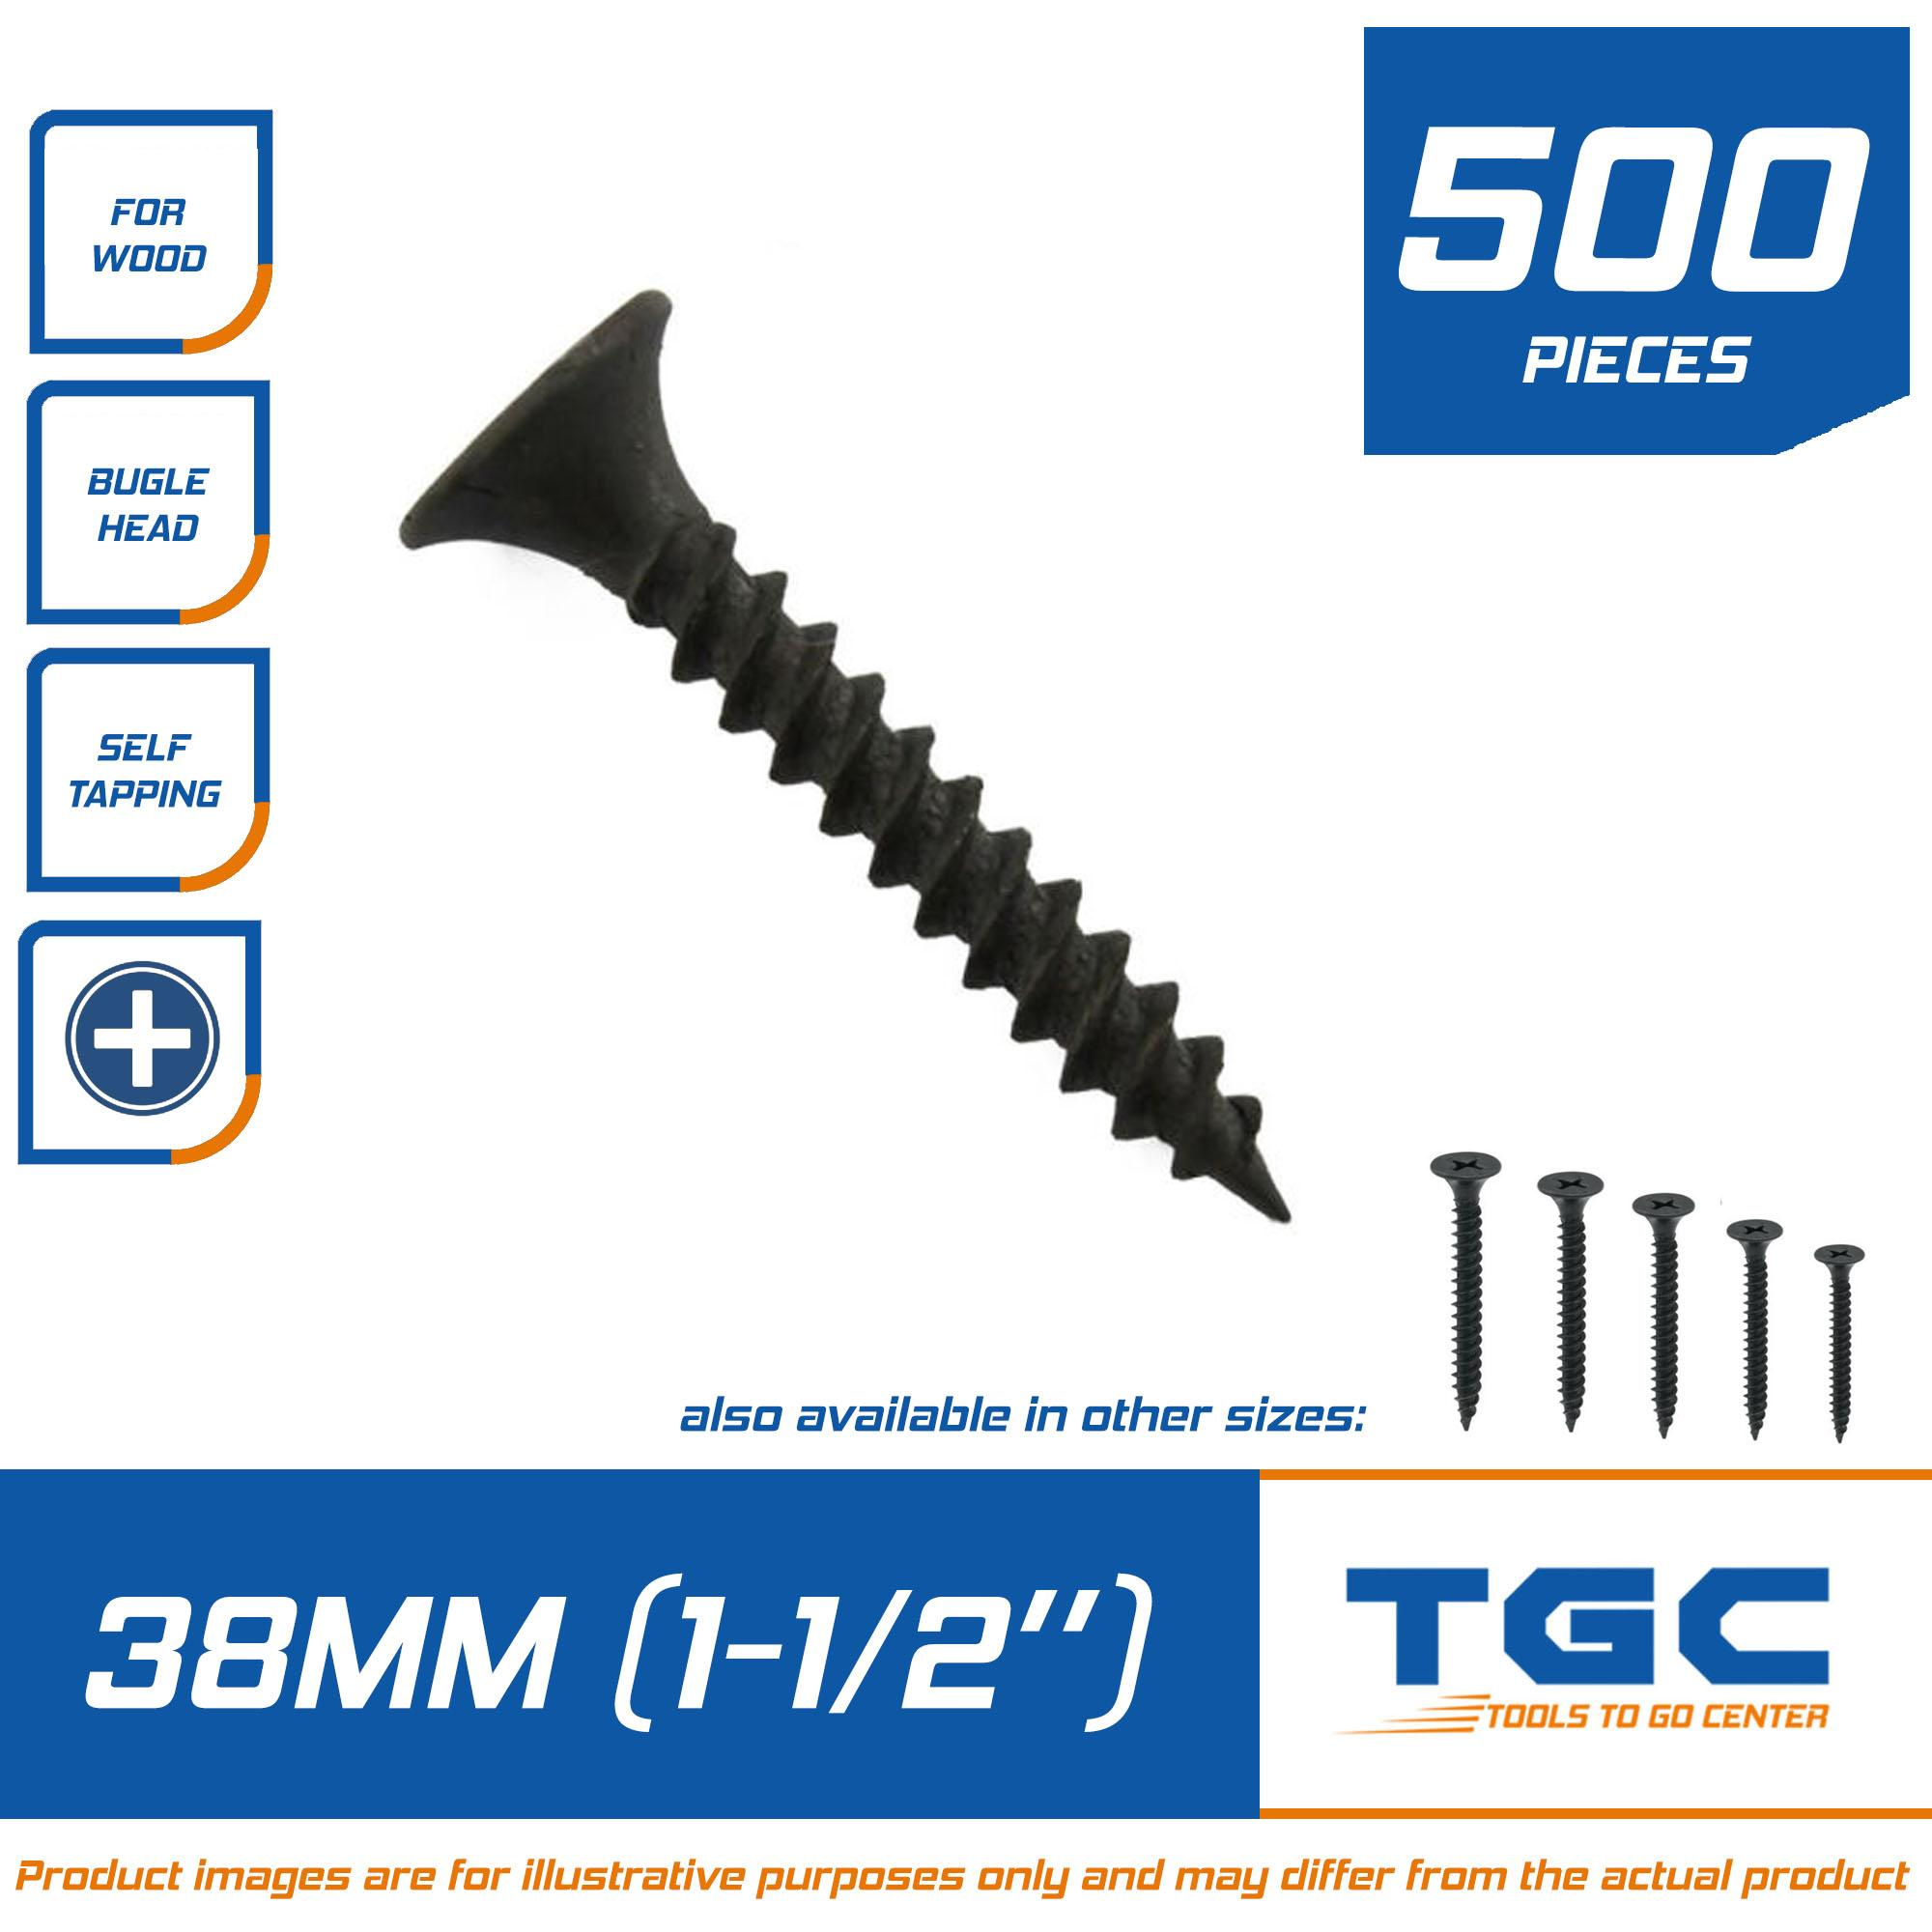 500 PCS Black Screw 1 1/2 inch ( 38 mm ) for wood Gypsum Screw Drywall  Screw Grabber Self Tapping